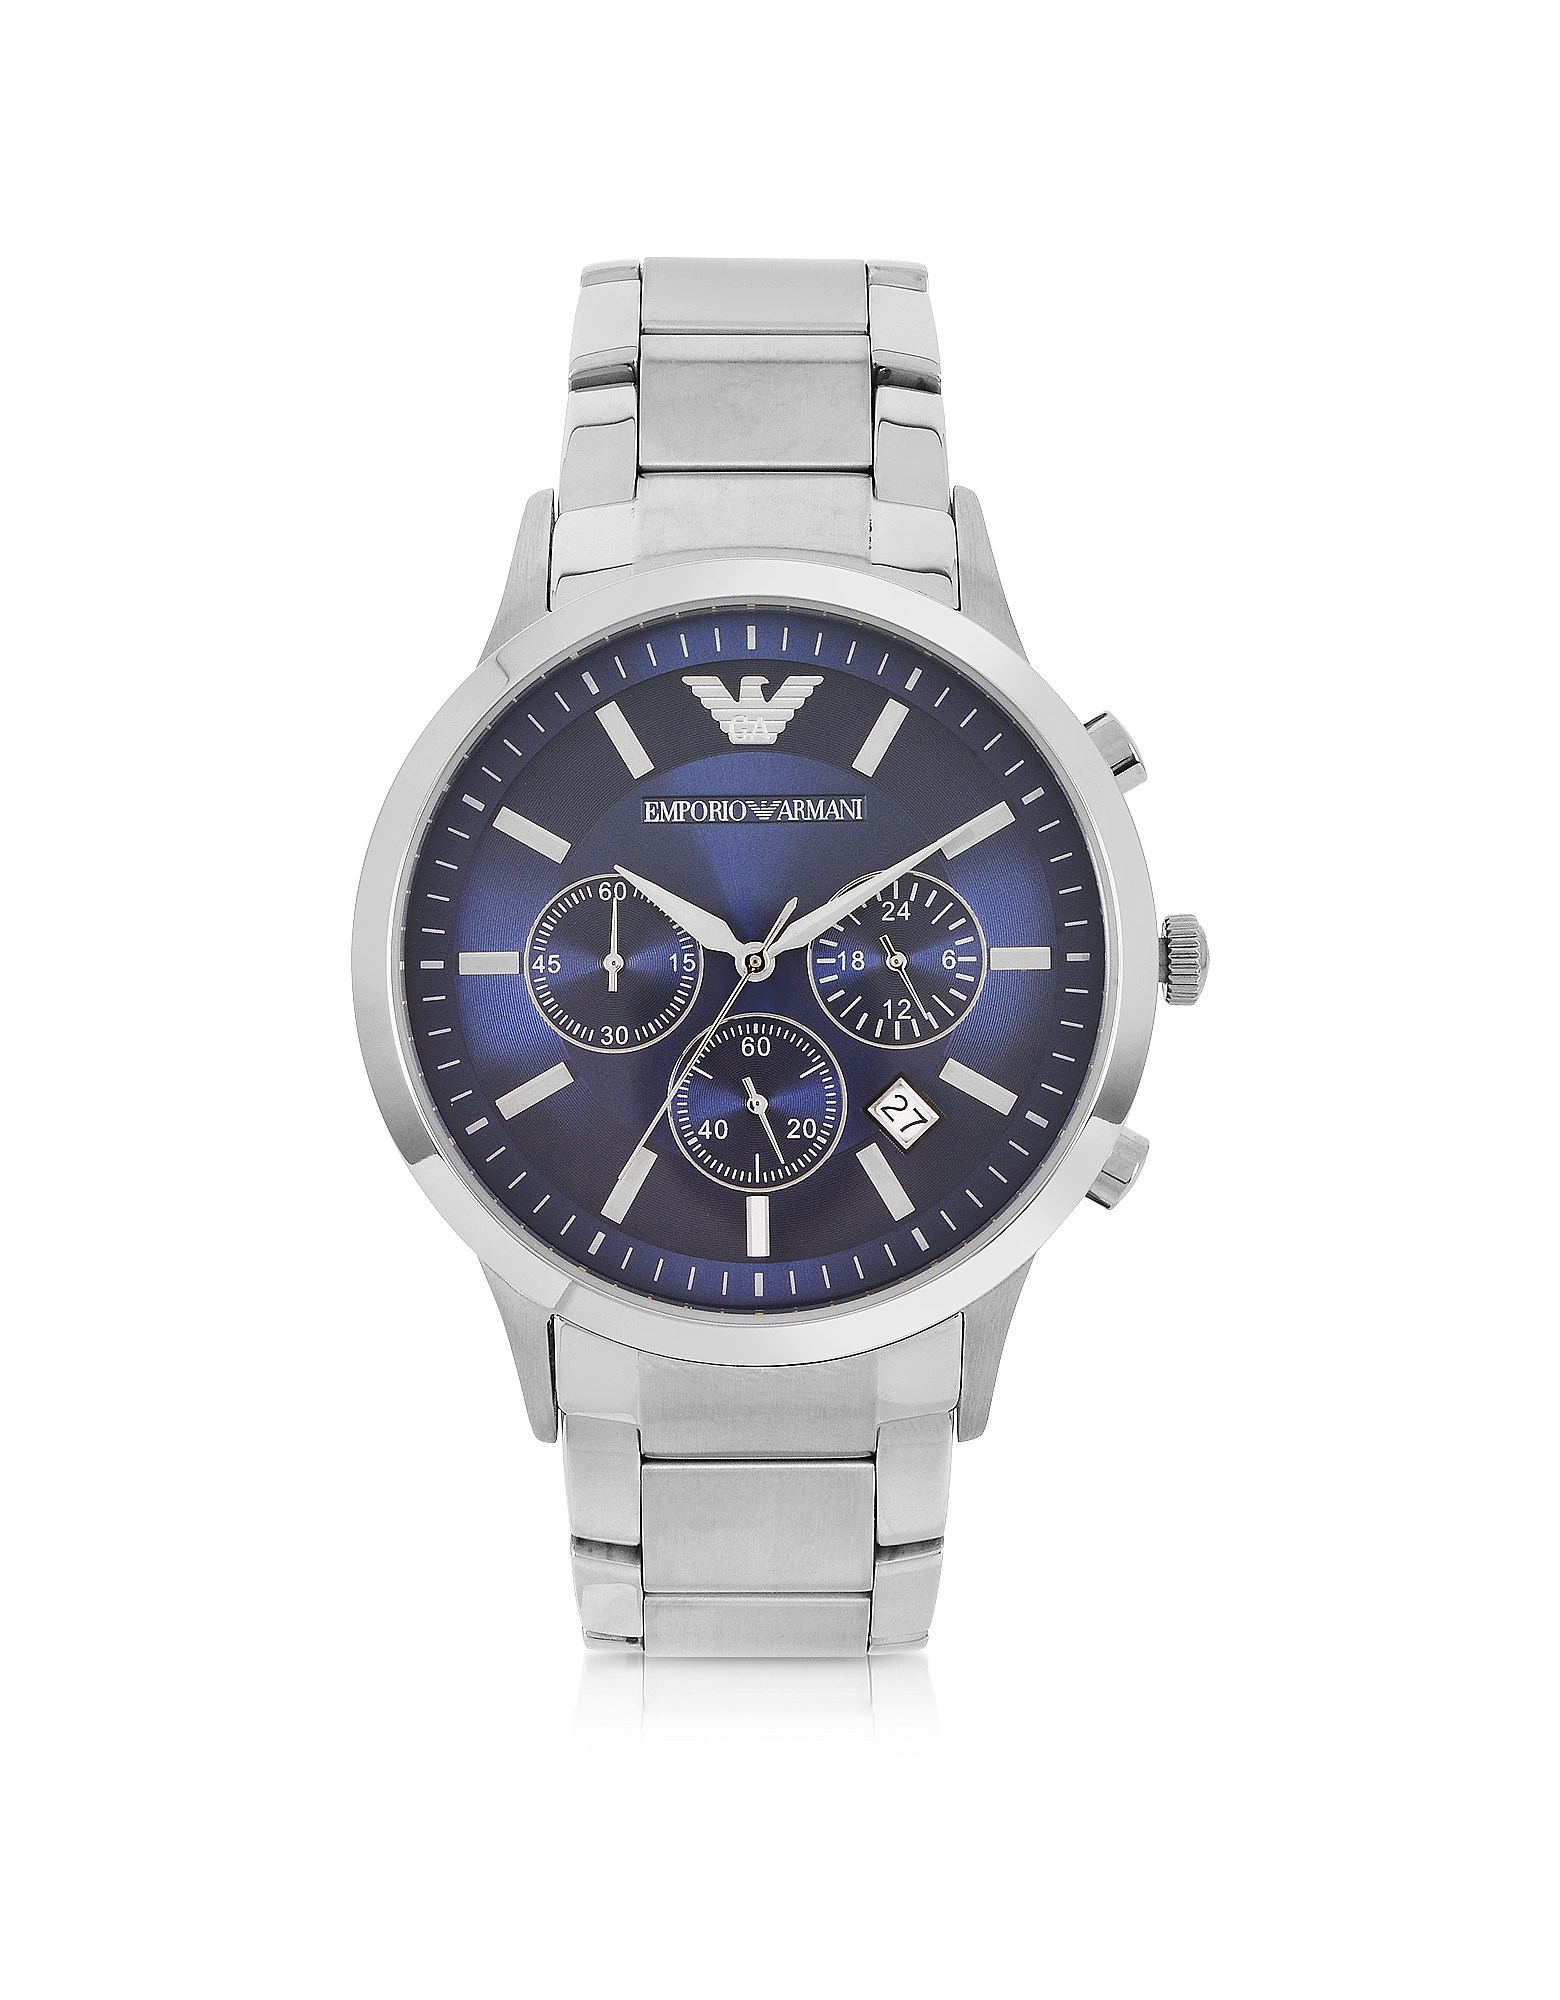 Emporio Armani Men's Watches, Men's Blue Dial Stainless Steel Chrono Watch